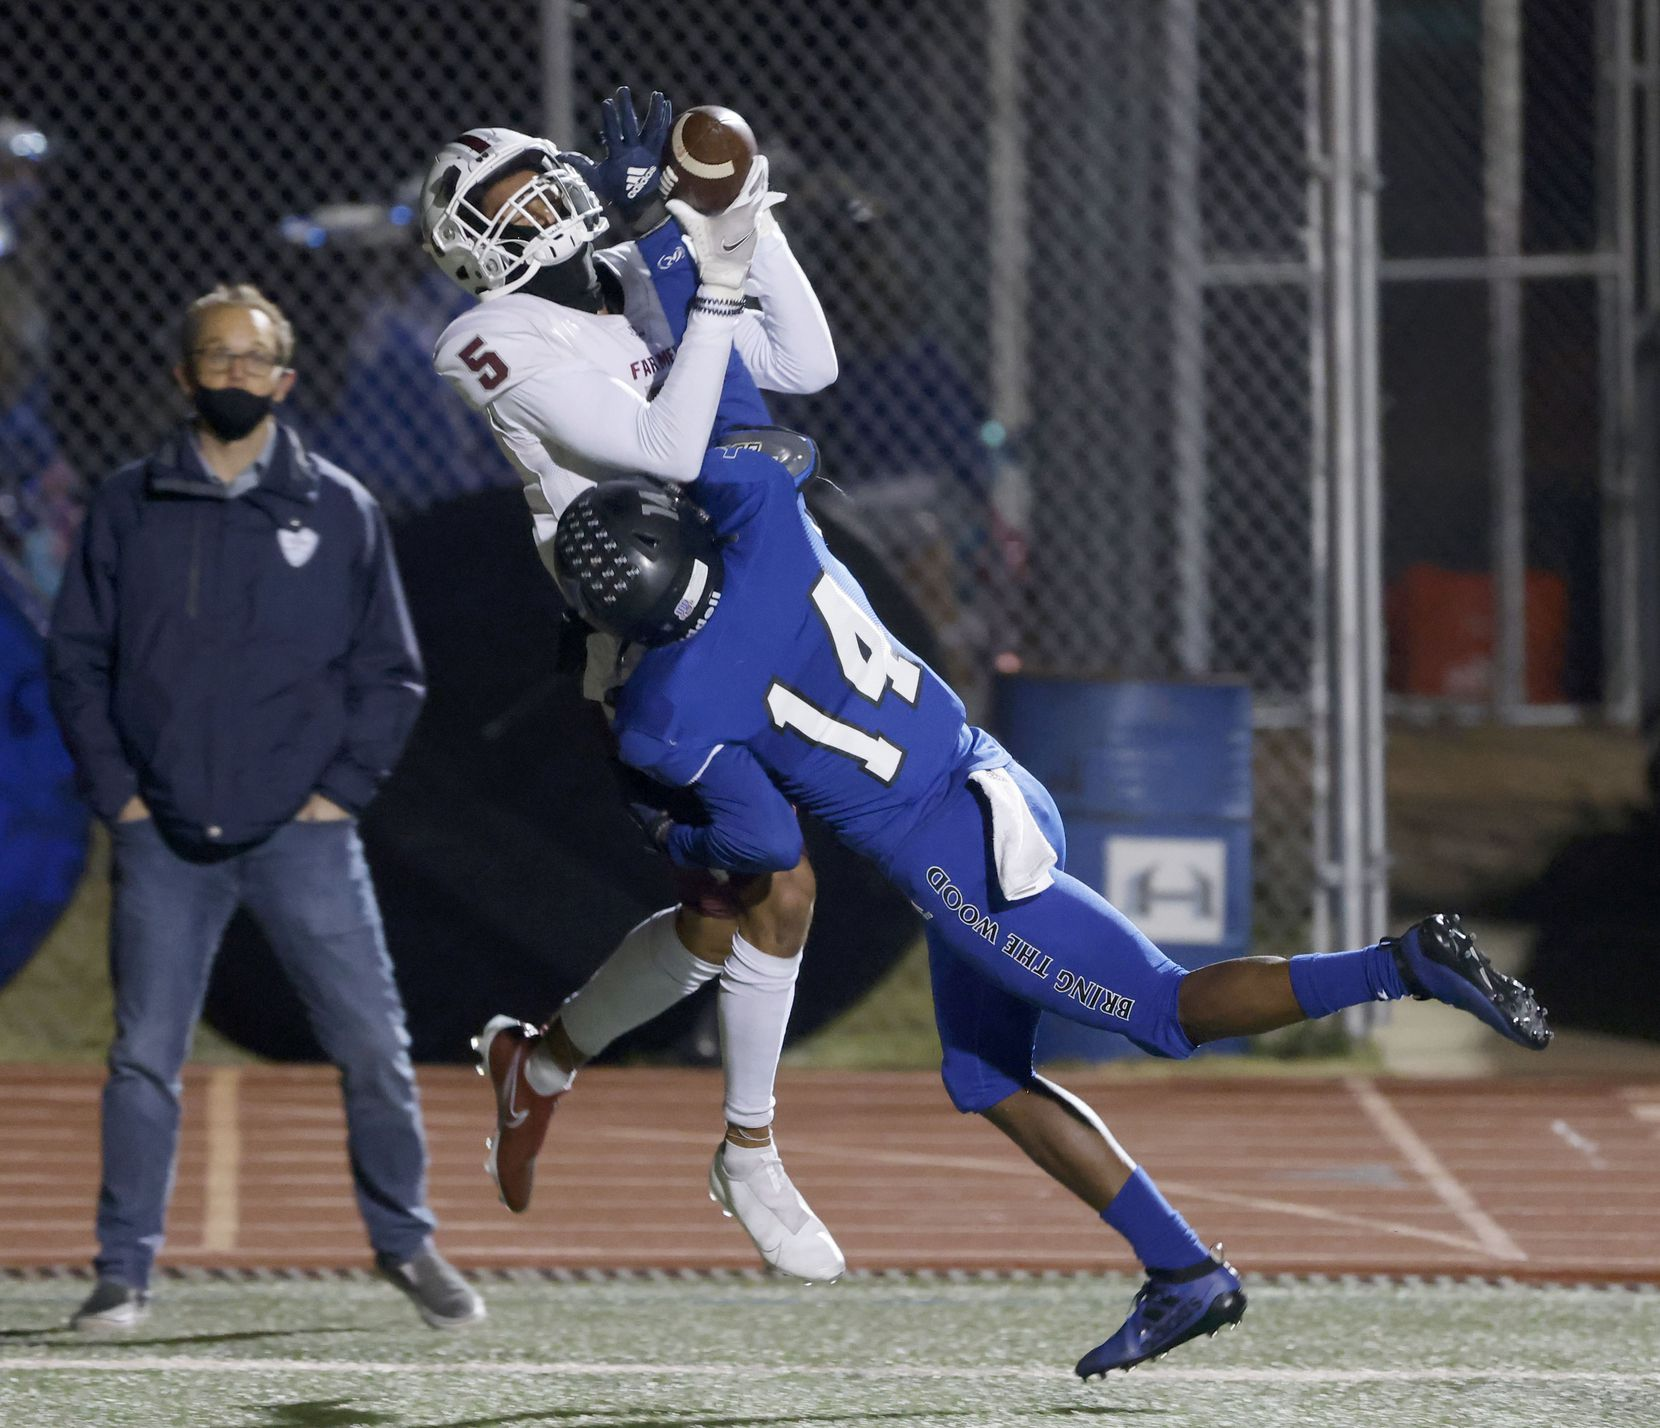 Lewisville receiver Isiah Stevens (5) makes a touchdown reception as he is defended by Hebron's Jonathan Jackson (14) during their District 6-6A high school football game on Dec. 4, 2020. (Michael Ainsworth/Special Contributor)